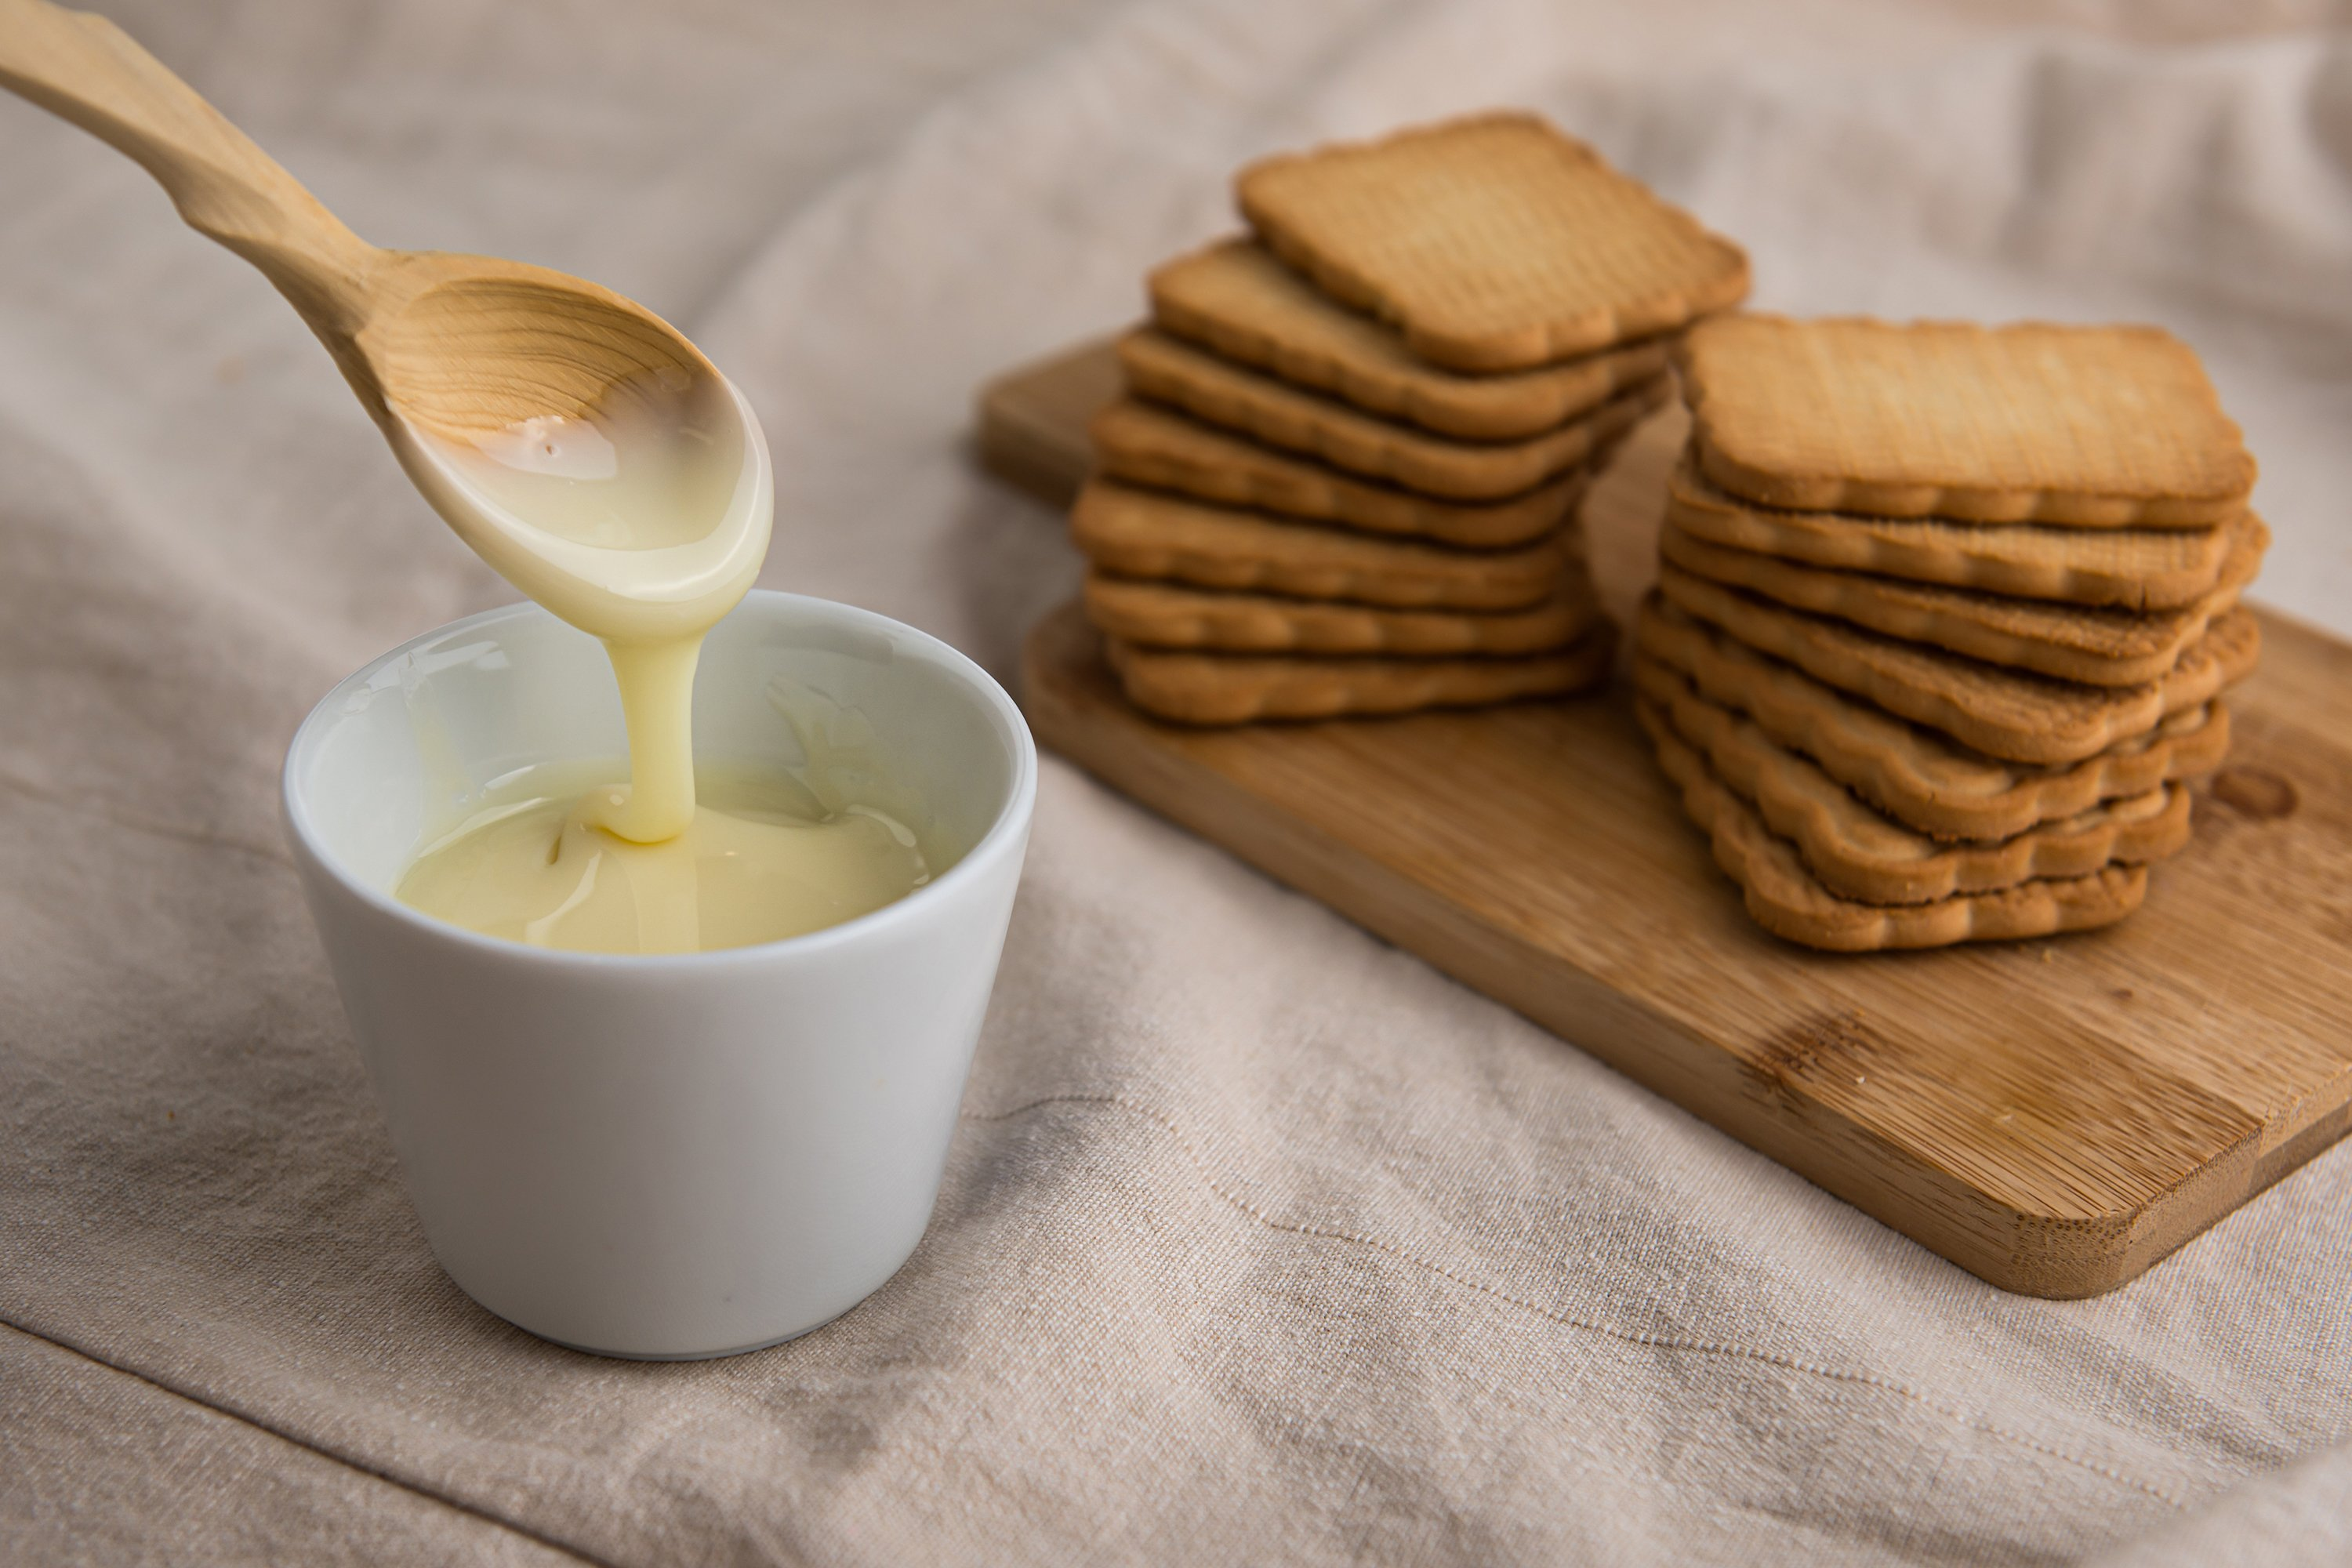 bowl with condensed milk with wooden spoon example image 1